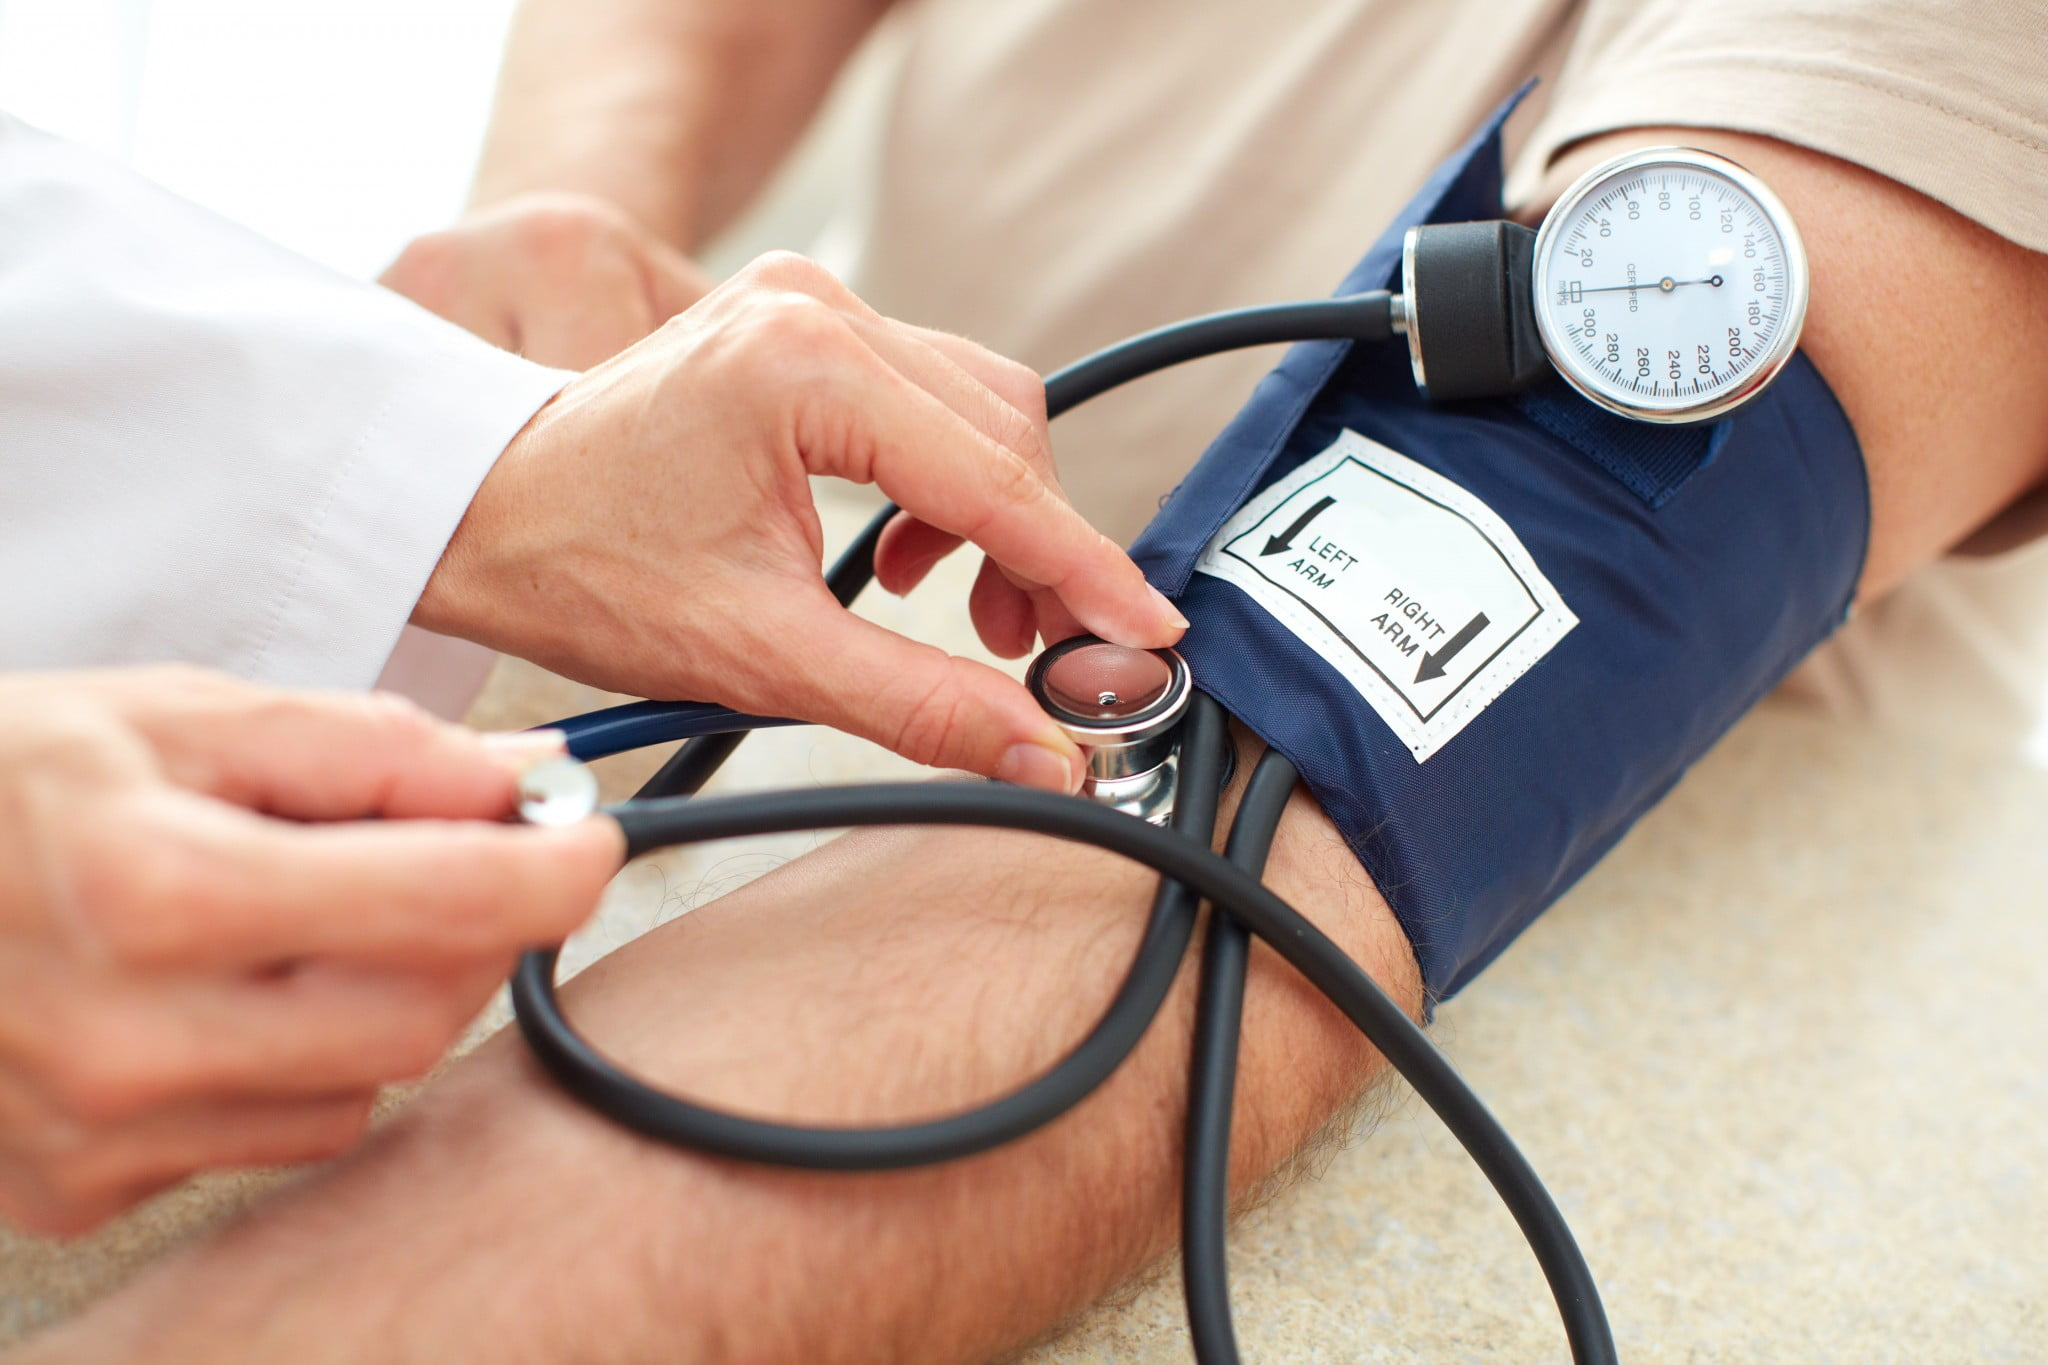 Monitor blood pressure at home: health experts